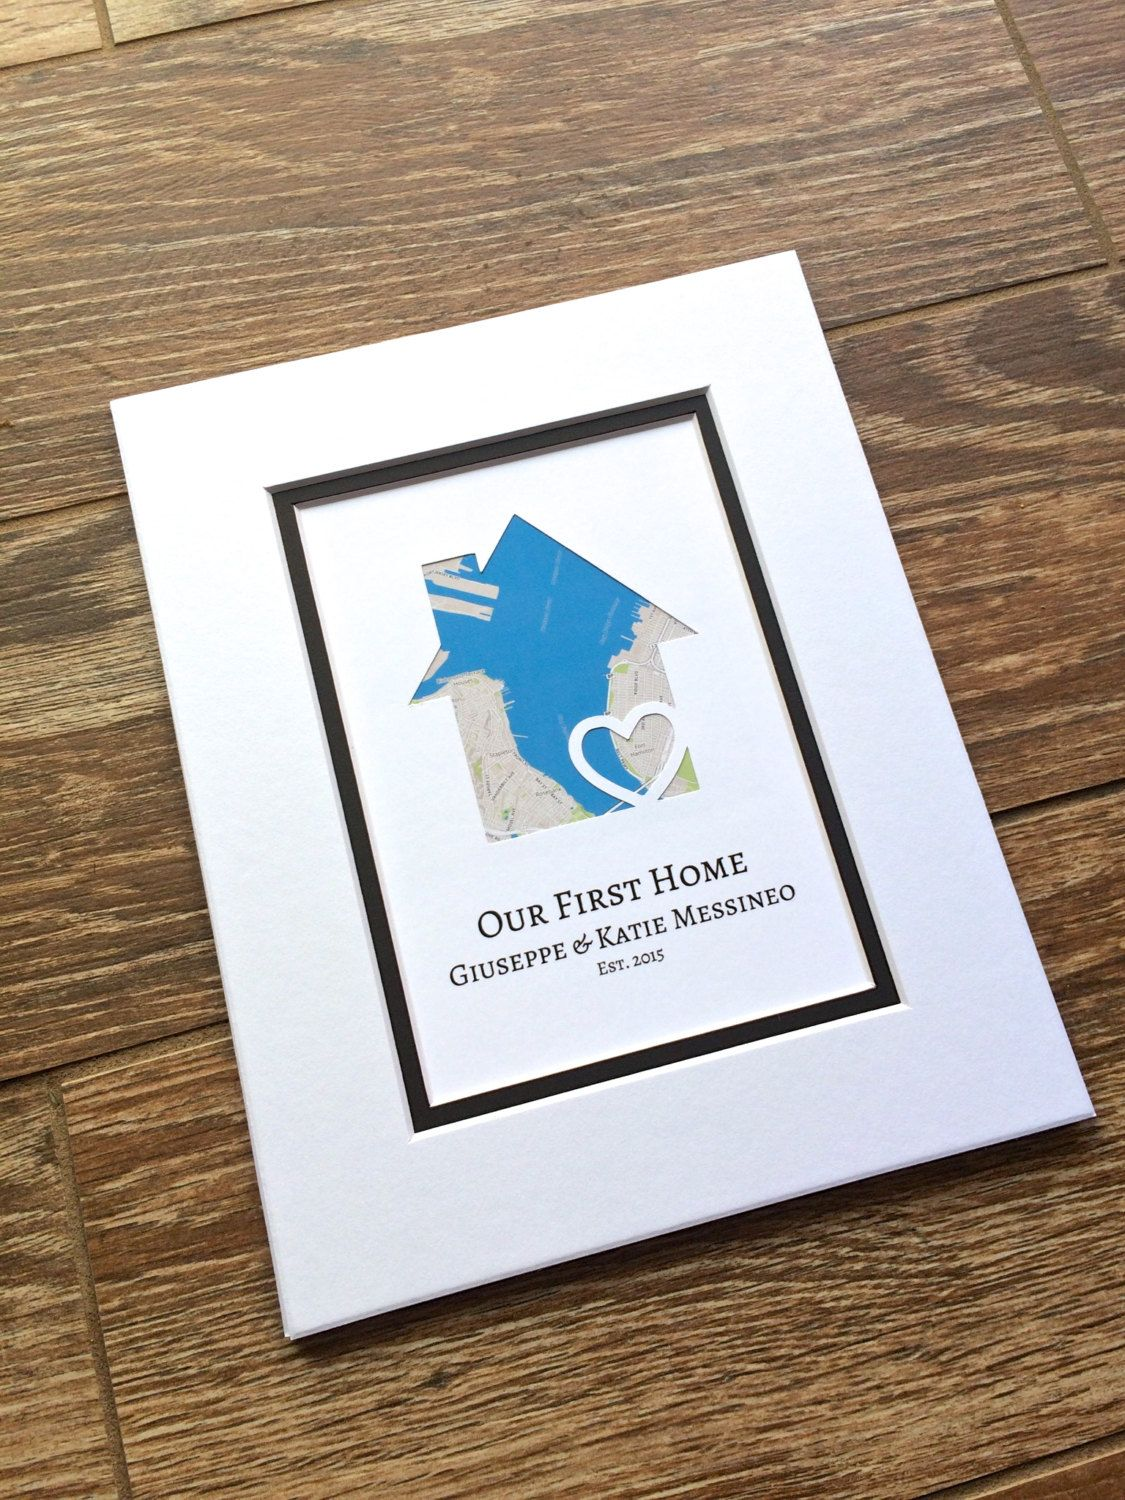 Our First Home Gift Gift For Families Family Gift Personalized